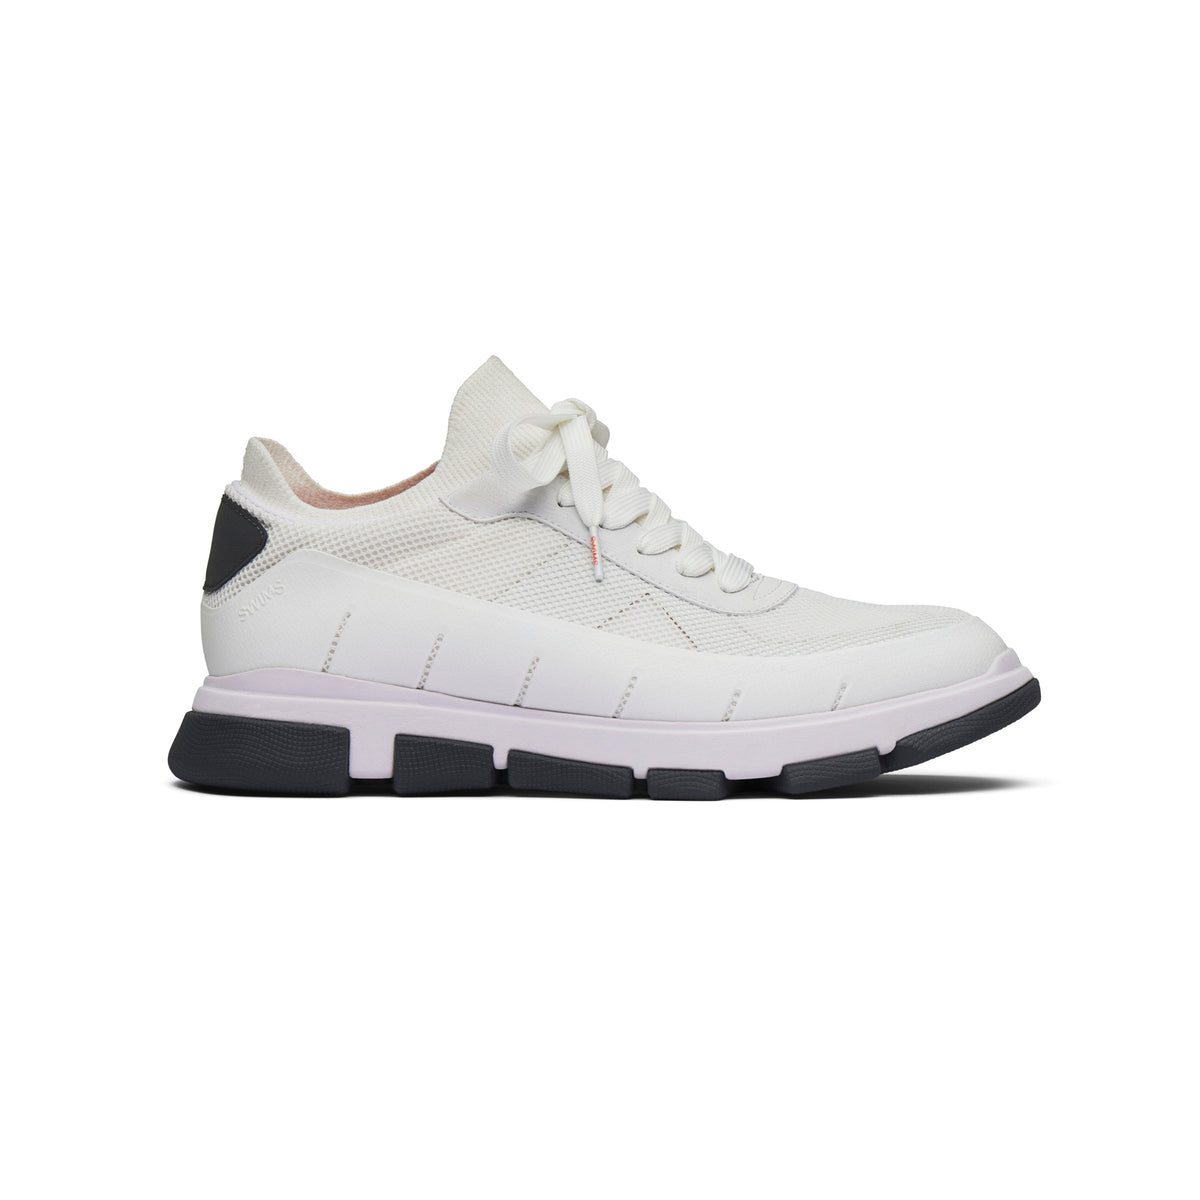 City Hiker Sneaker - background::white,variant::White/Gray